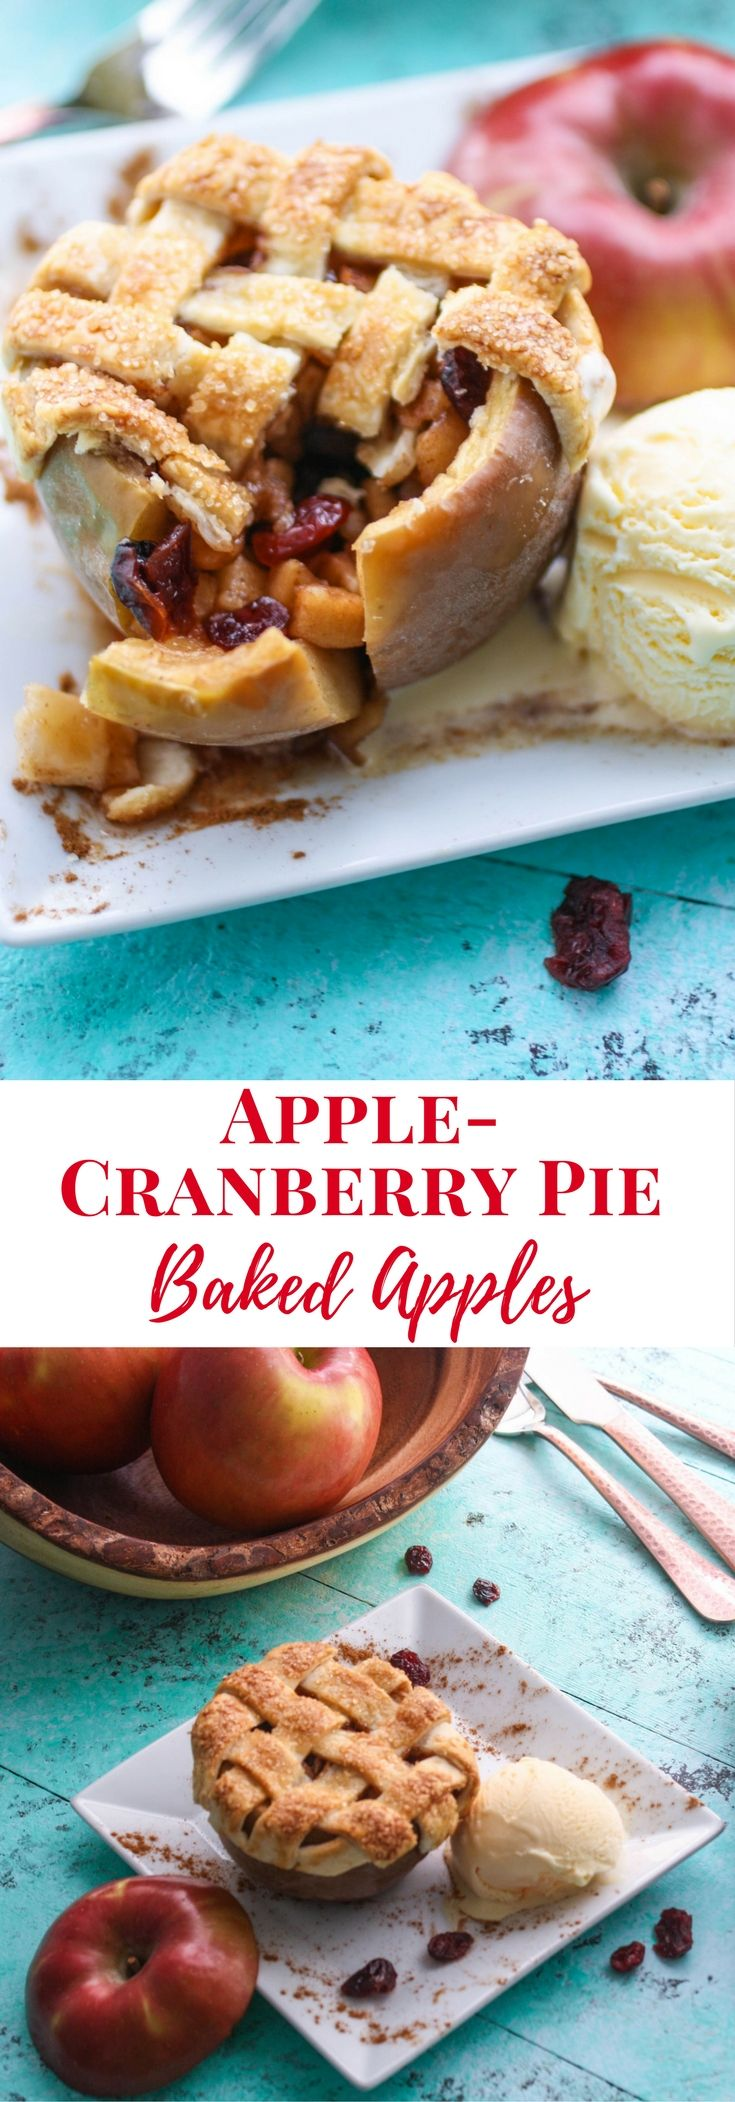 Apple-Cranberry Pie Baked Apples | Recipe | Apple ...